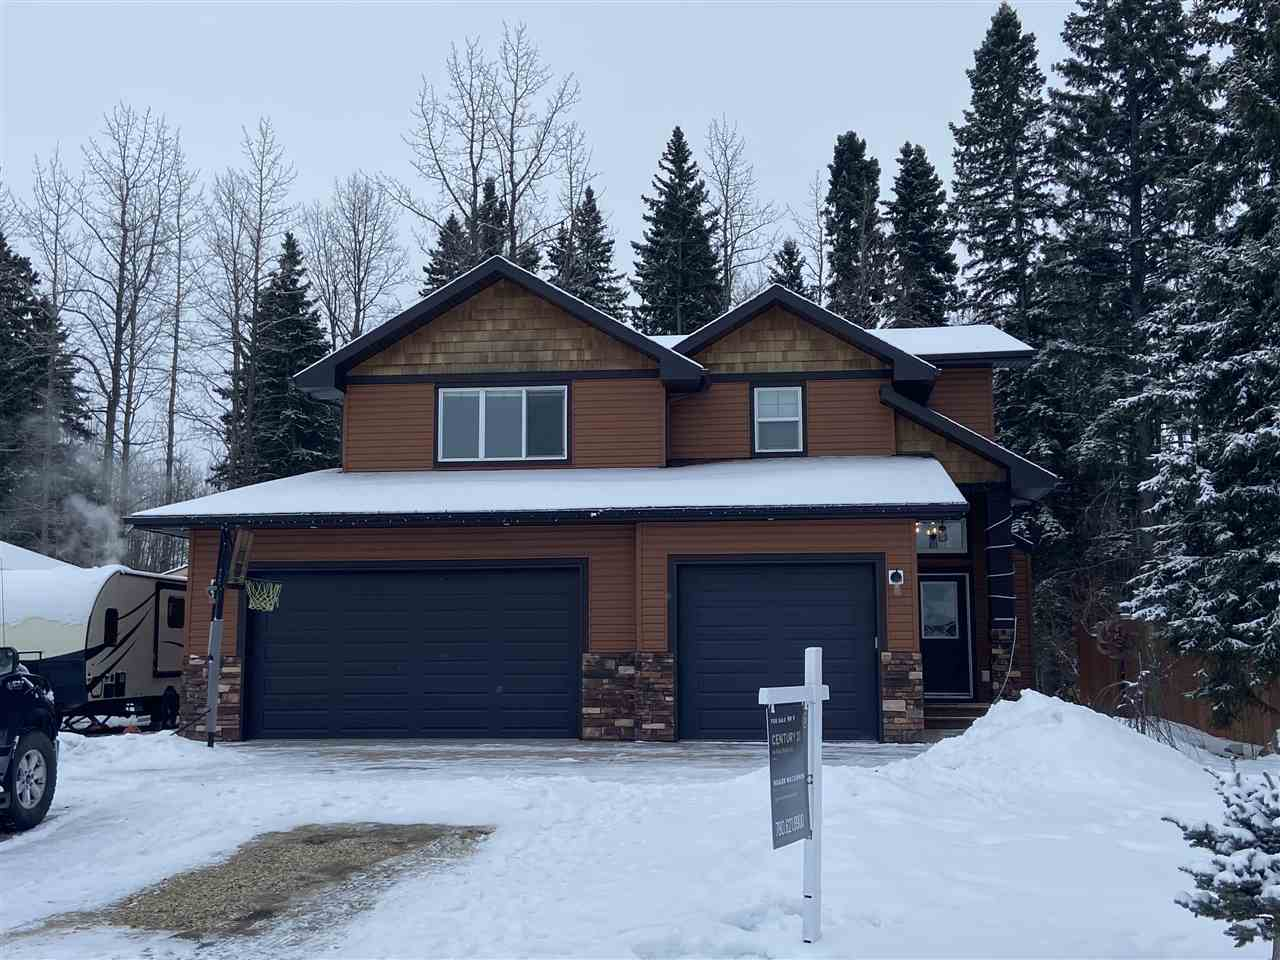 This beautiful custom built home rests on a 0.26 acre parcel and is located at Deer Crossing Estates in Breton! This wonderful home backs onto the green at Hole # 7 of the Breton Golf Course! With trees behind you this home feels like acreage living w/ the quick access to amenities a community offers. Entering the home you'll be thrilled w/ the soaring ceilings and stone enclosed fireplace in the living room. The kitchen is truly special w/ lots of granite, counter space, and a massive island complete with bar seating! The ensuite in the MBR is very elegant and features his & her sinks. The wooded deck overlooks your privately treed backyard complete w/ fire pit area and dog run! Downstairs one finds the 4th bedroom, large rec room and walk out basement. If one wants to add a suite below, the plumbing & electrical exists downstairs for a 2nd kitchen to be added (basement is plumbed for in floor heat). Don't forget the triple garage and RV hookup! Breton is easily commutable to Leduc or Drayton Valley.